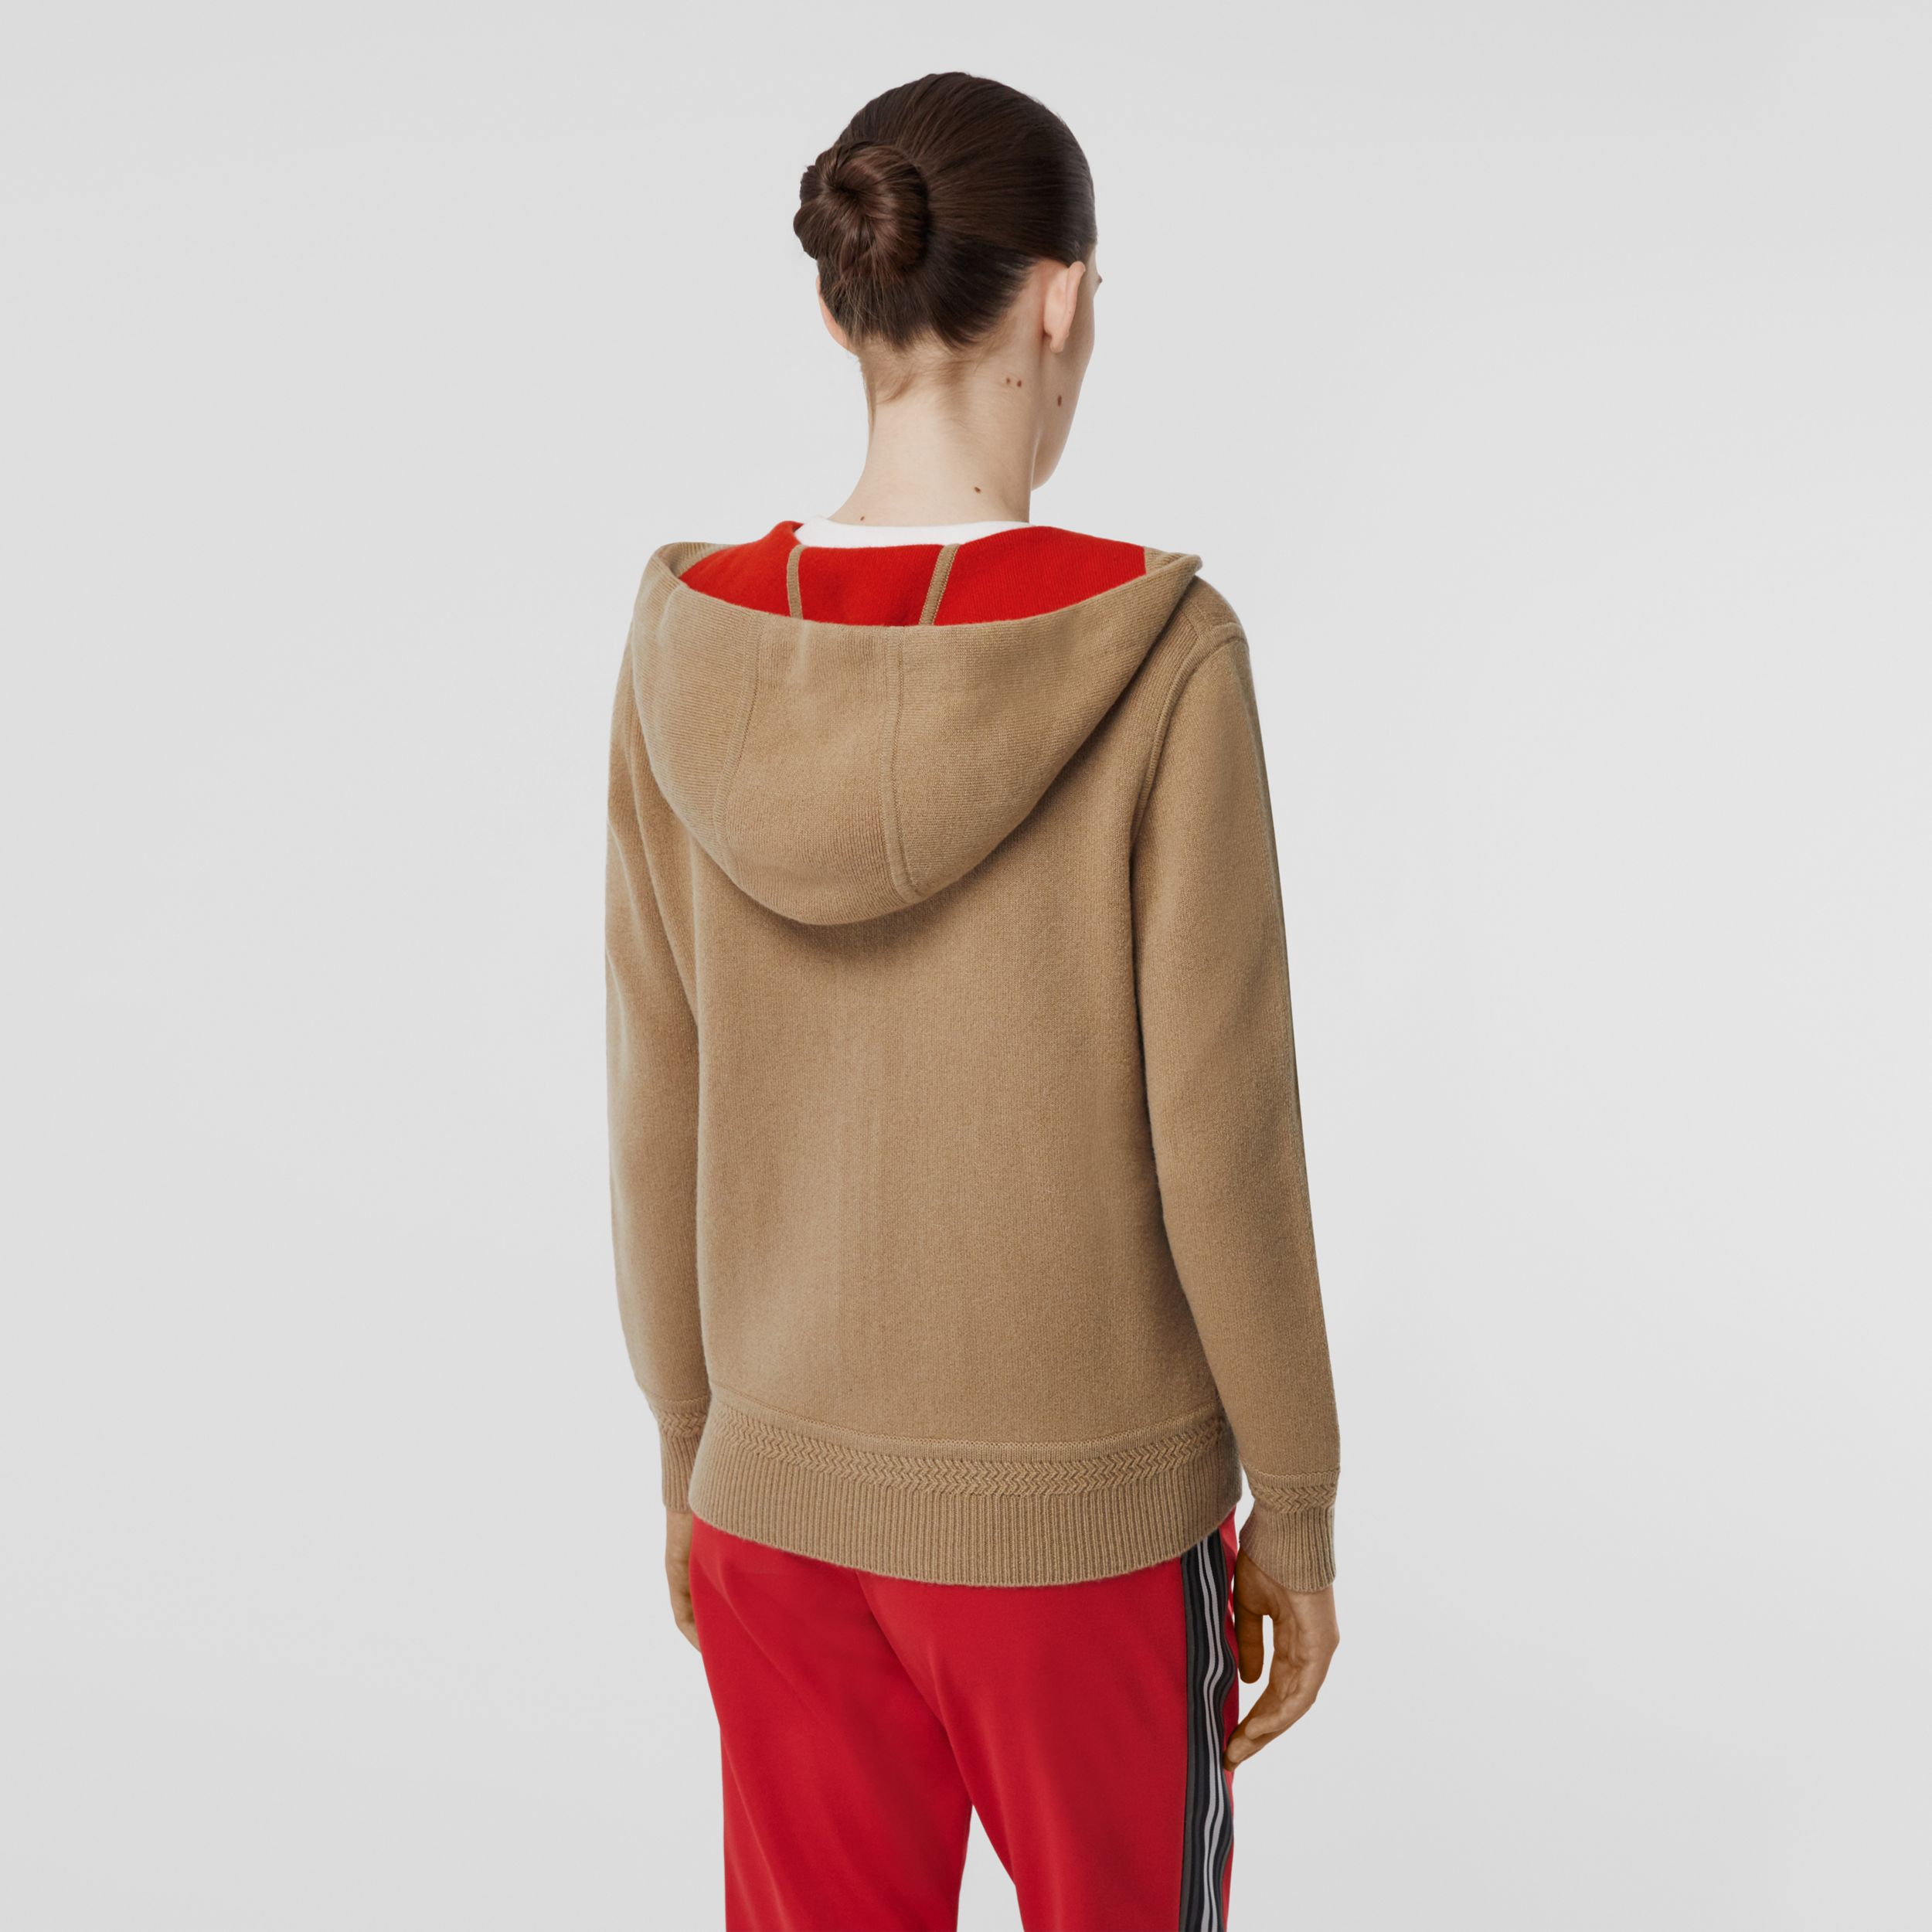 Embroidered Logo Cashmere Hooded Top in Archive Beige - Women | Burberry Australia - 3